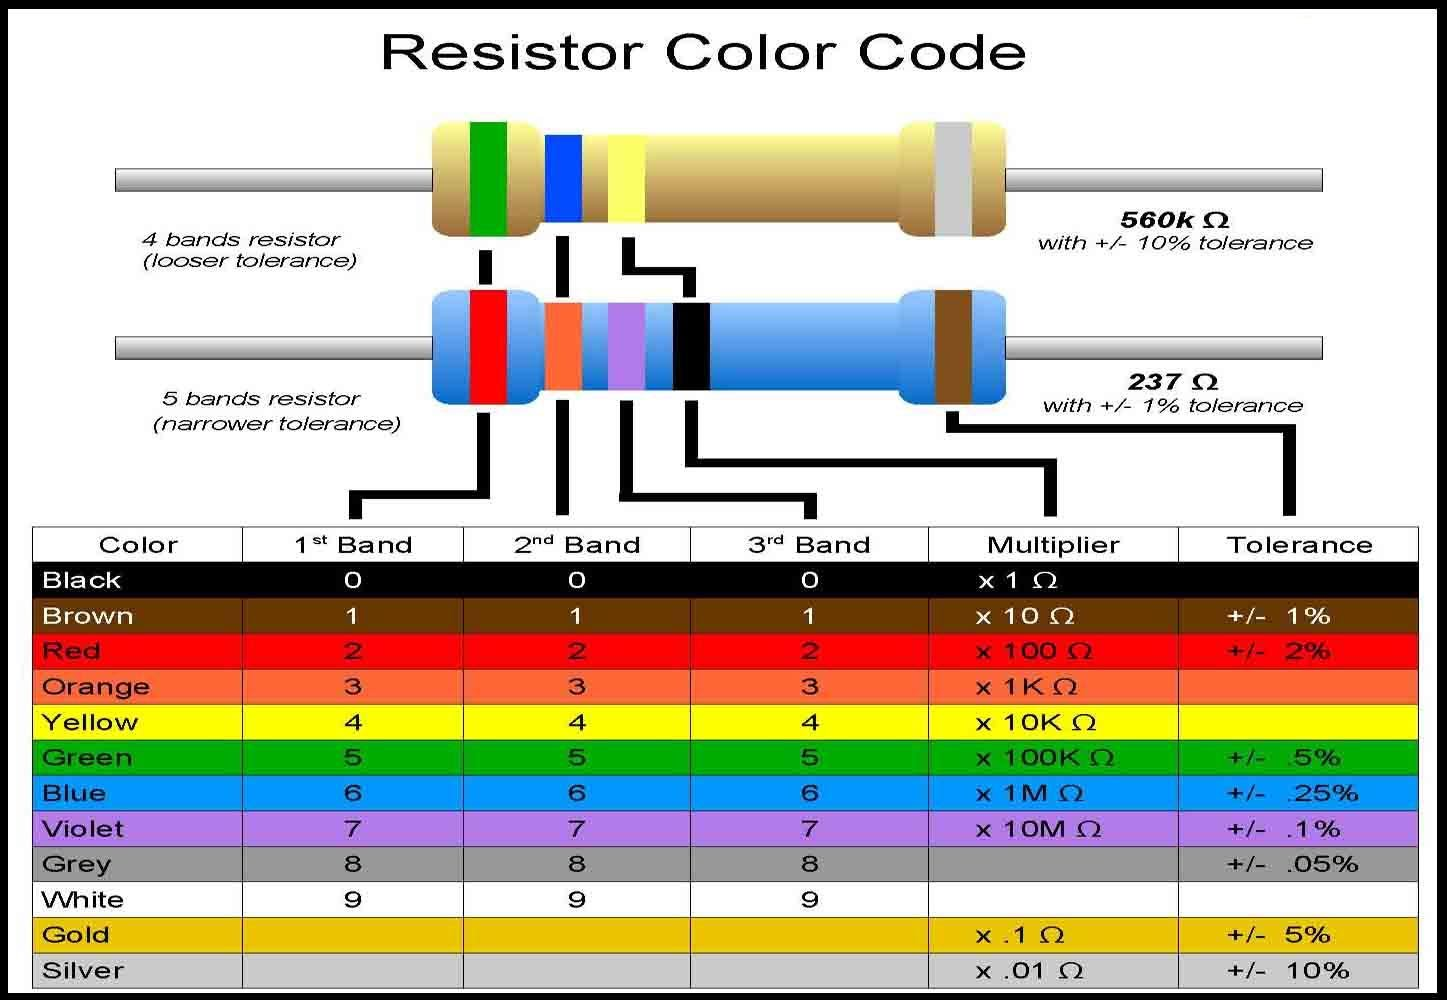 Basic electronics resistor color code best electronics 2017 resistor color code generator electronics everyday nvjuhfo Gallery